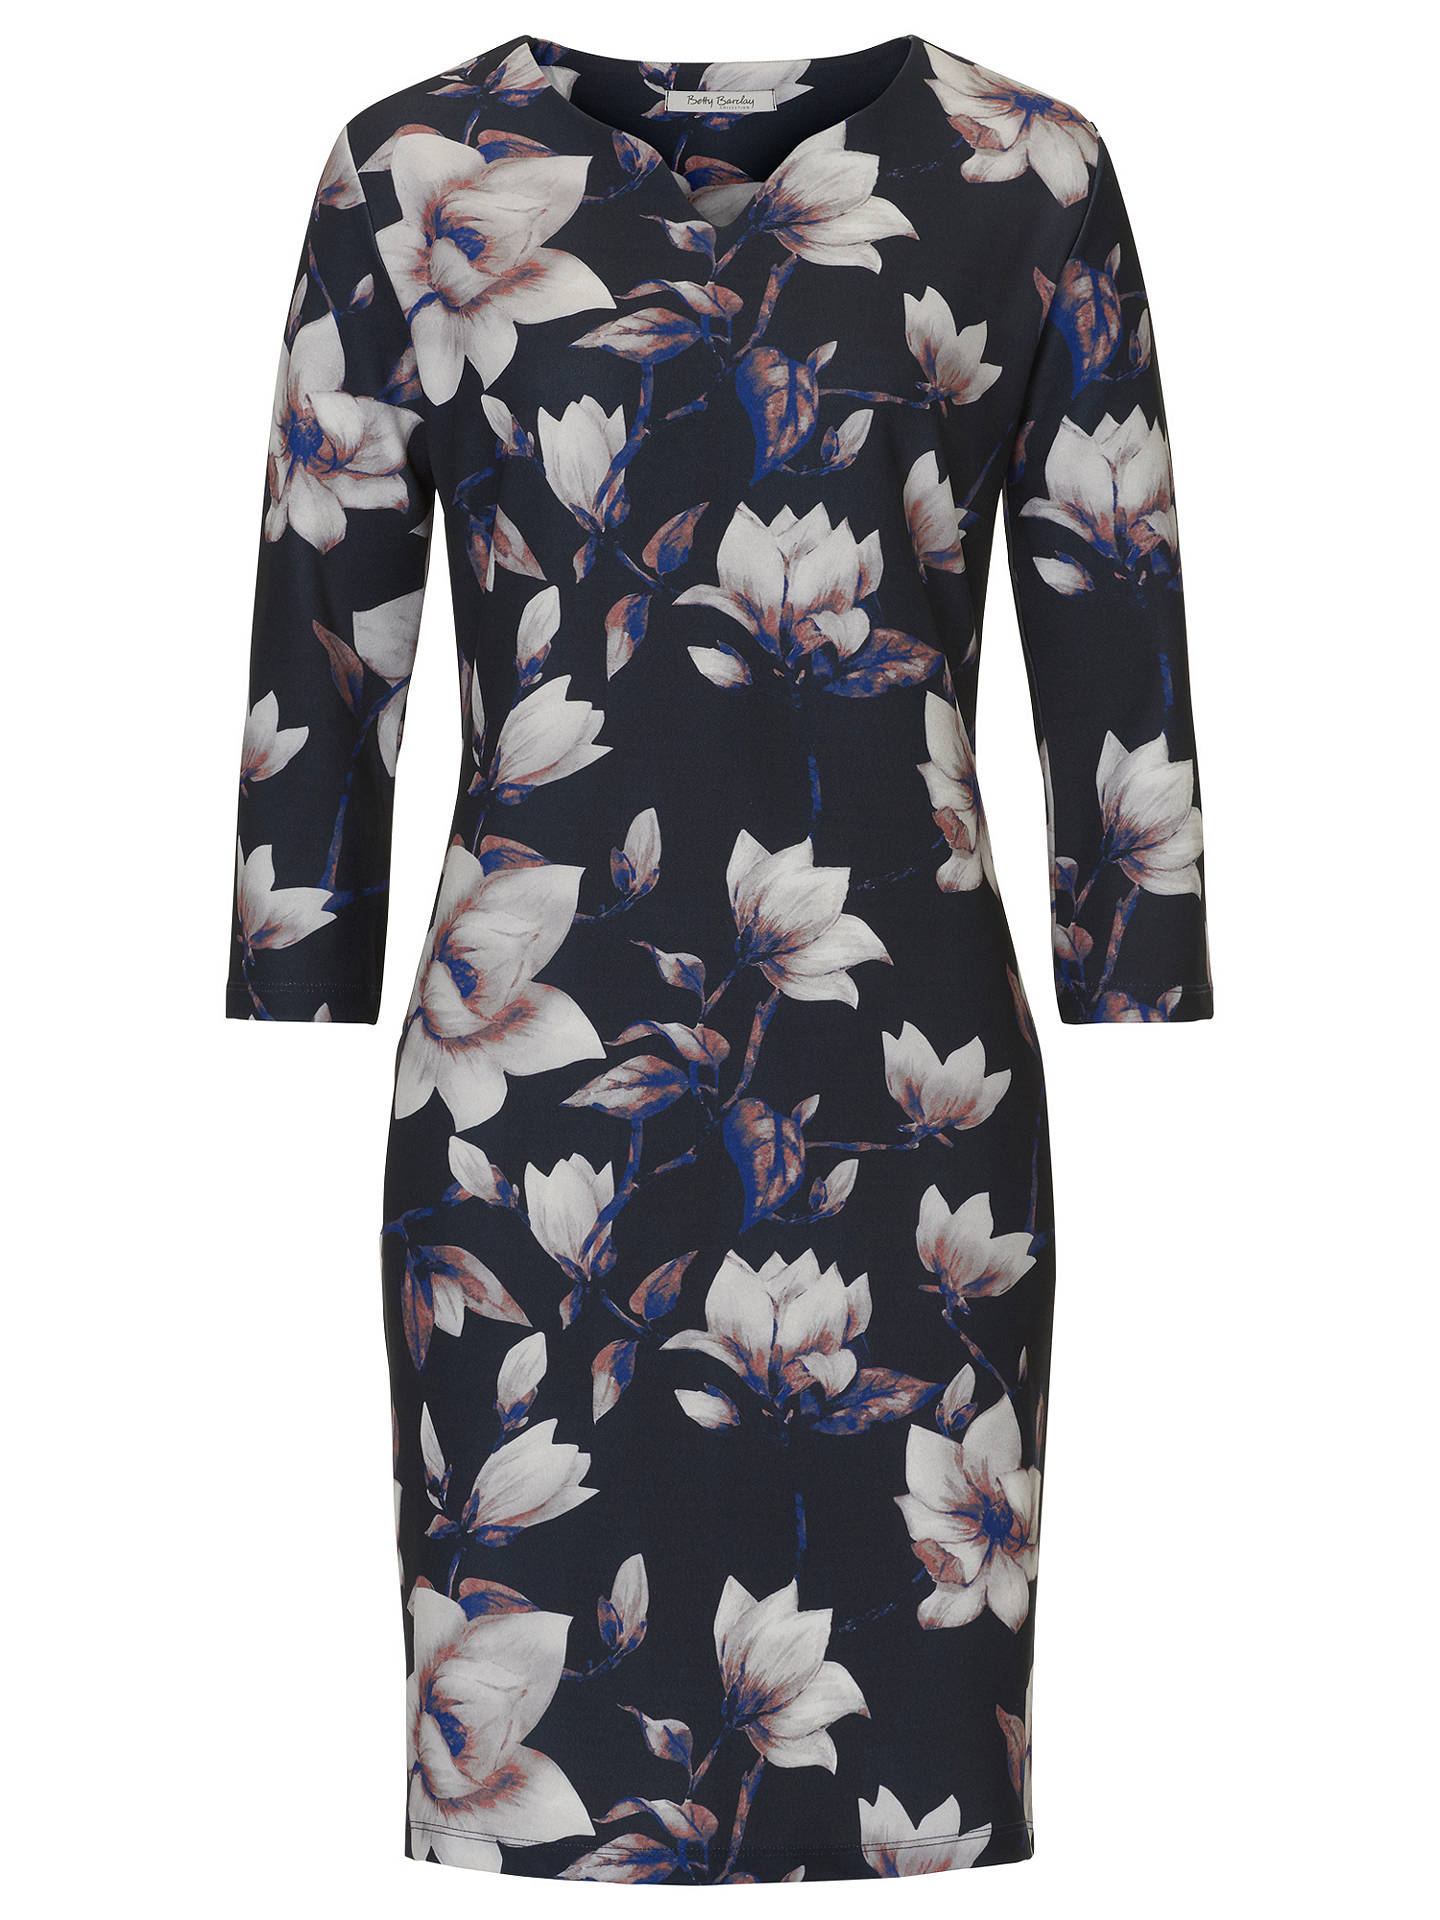 BuyBetty Barclay Floral Print Jersey Dress, Dark Blue/Rose, 10 Online at johnlewis.com